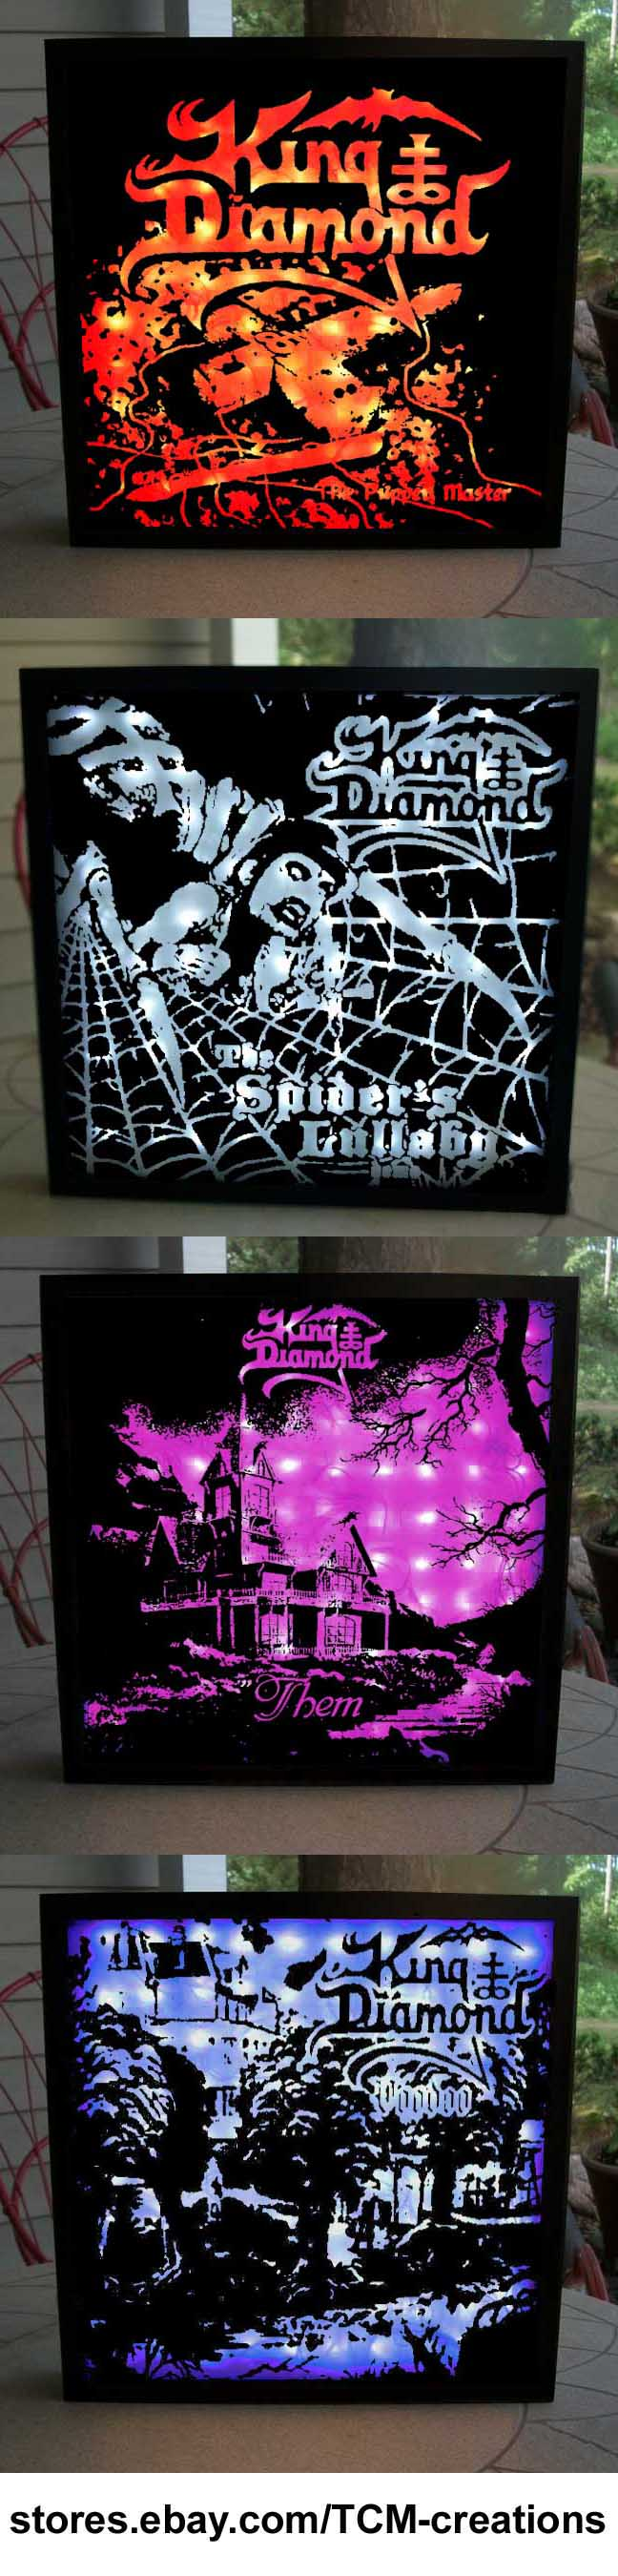 King Diamond Shadow Boxes with LED lighting  Fatal Portrait